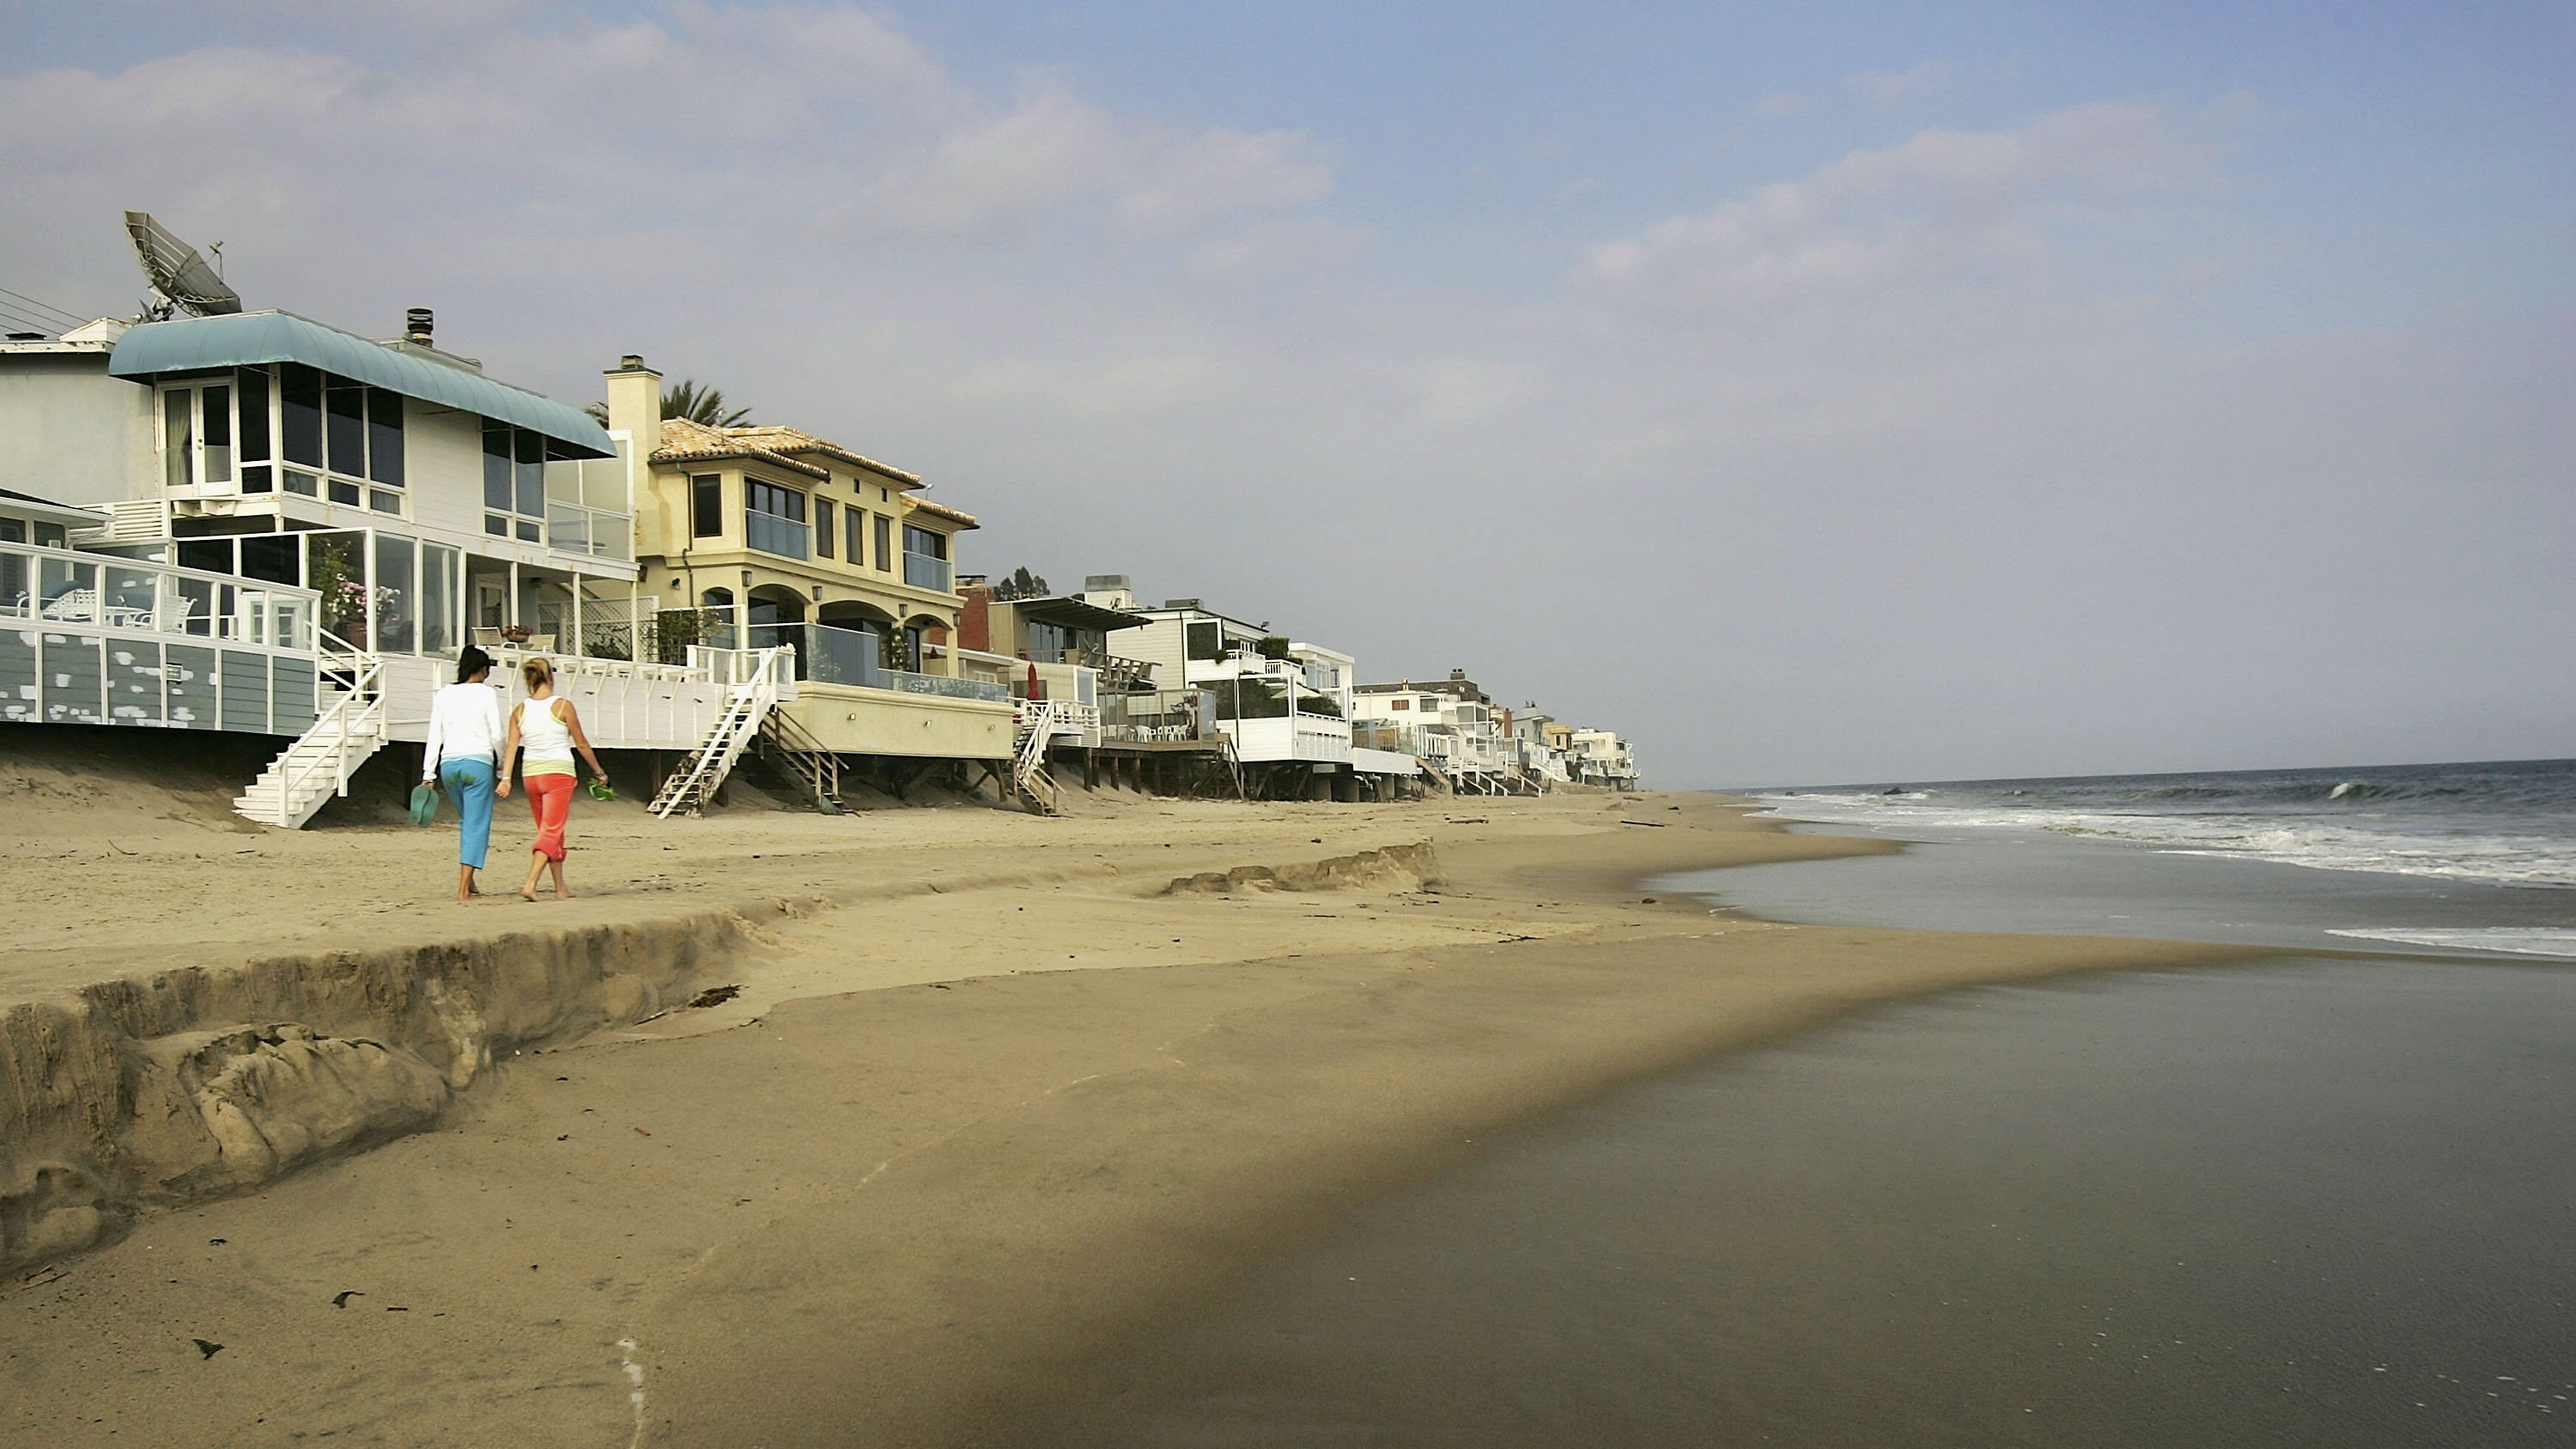 Beaches across America showed unsafe levels of pollution last year, a study finds